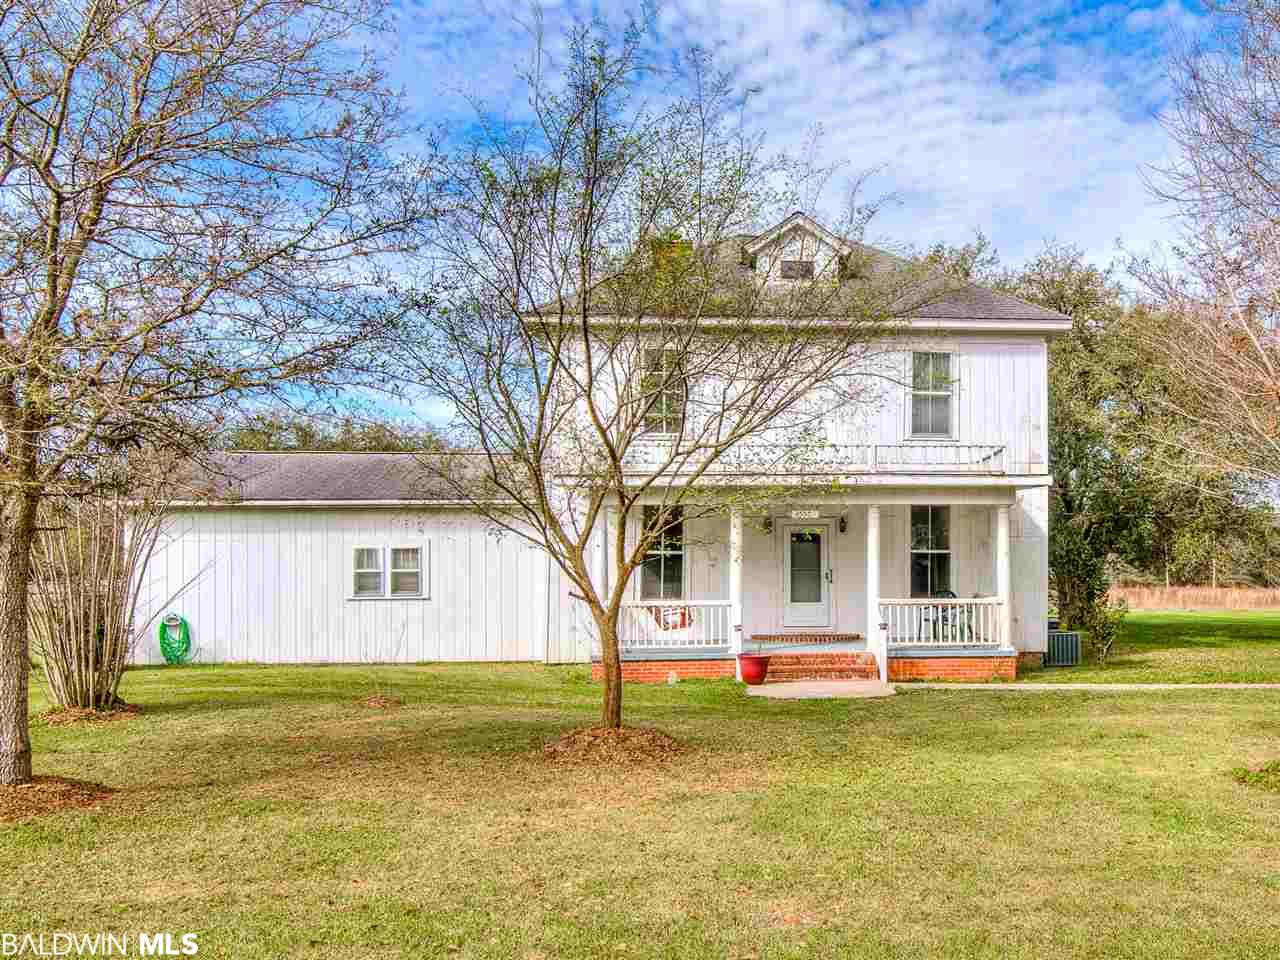 45503 Red Hill Rd, Bay Minette, AL 36507